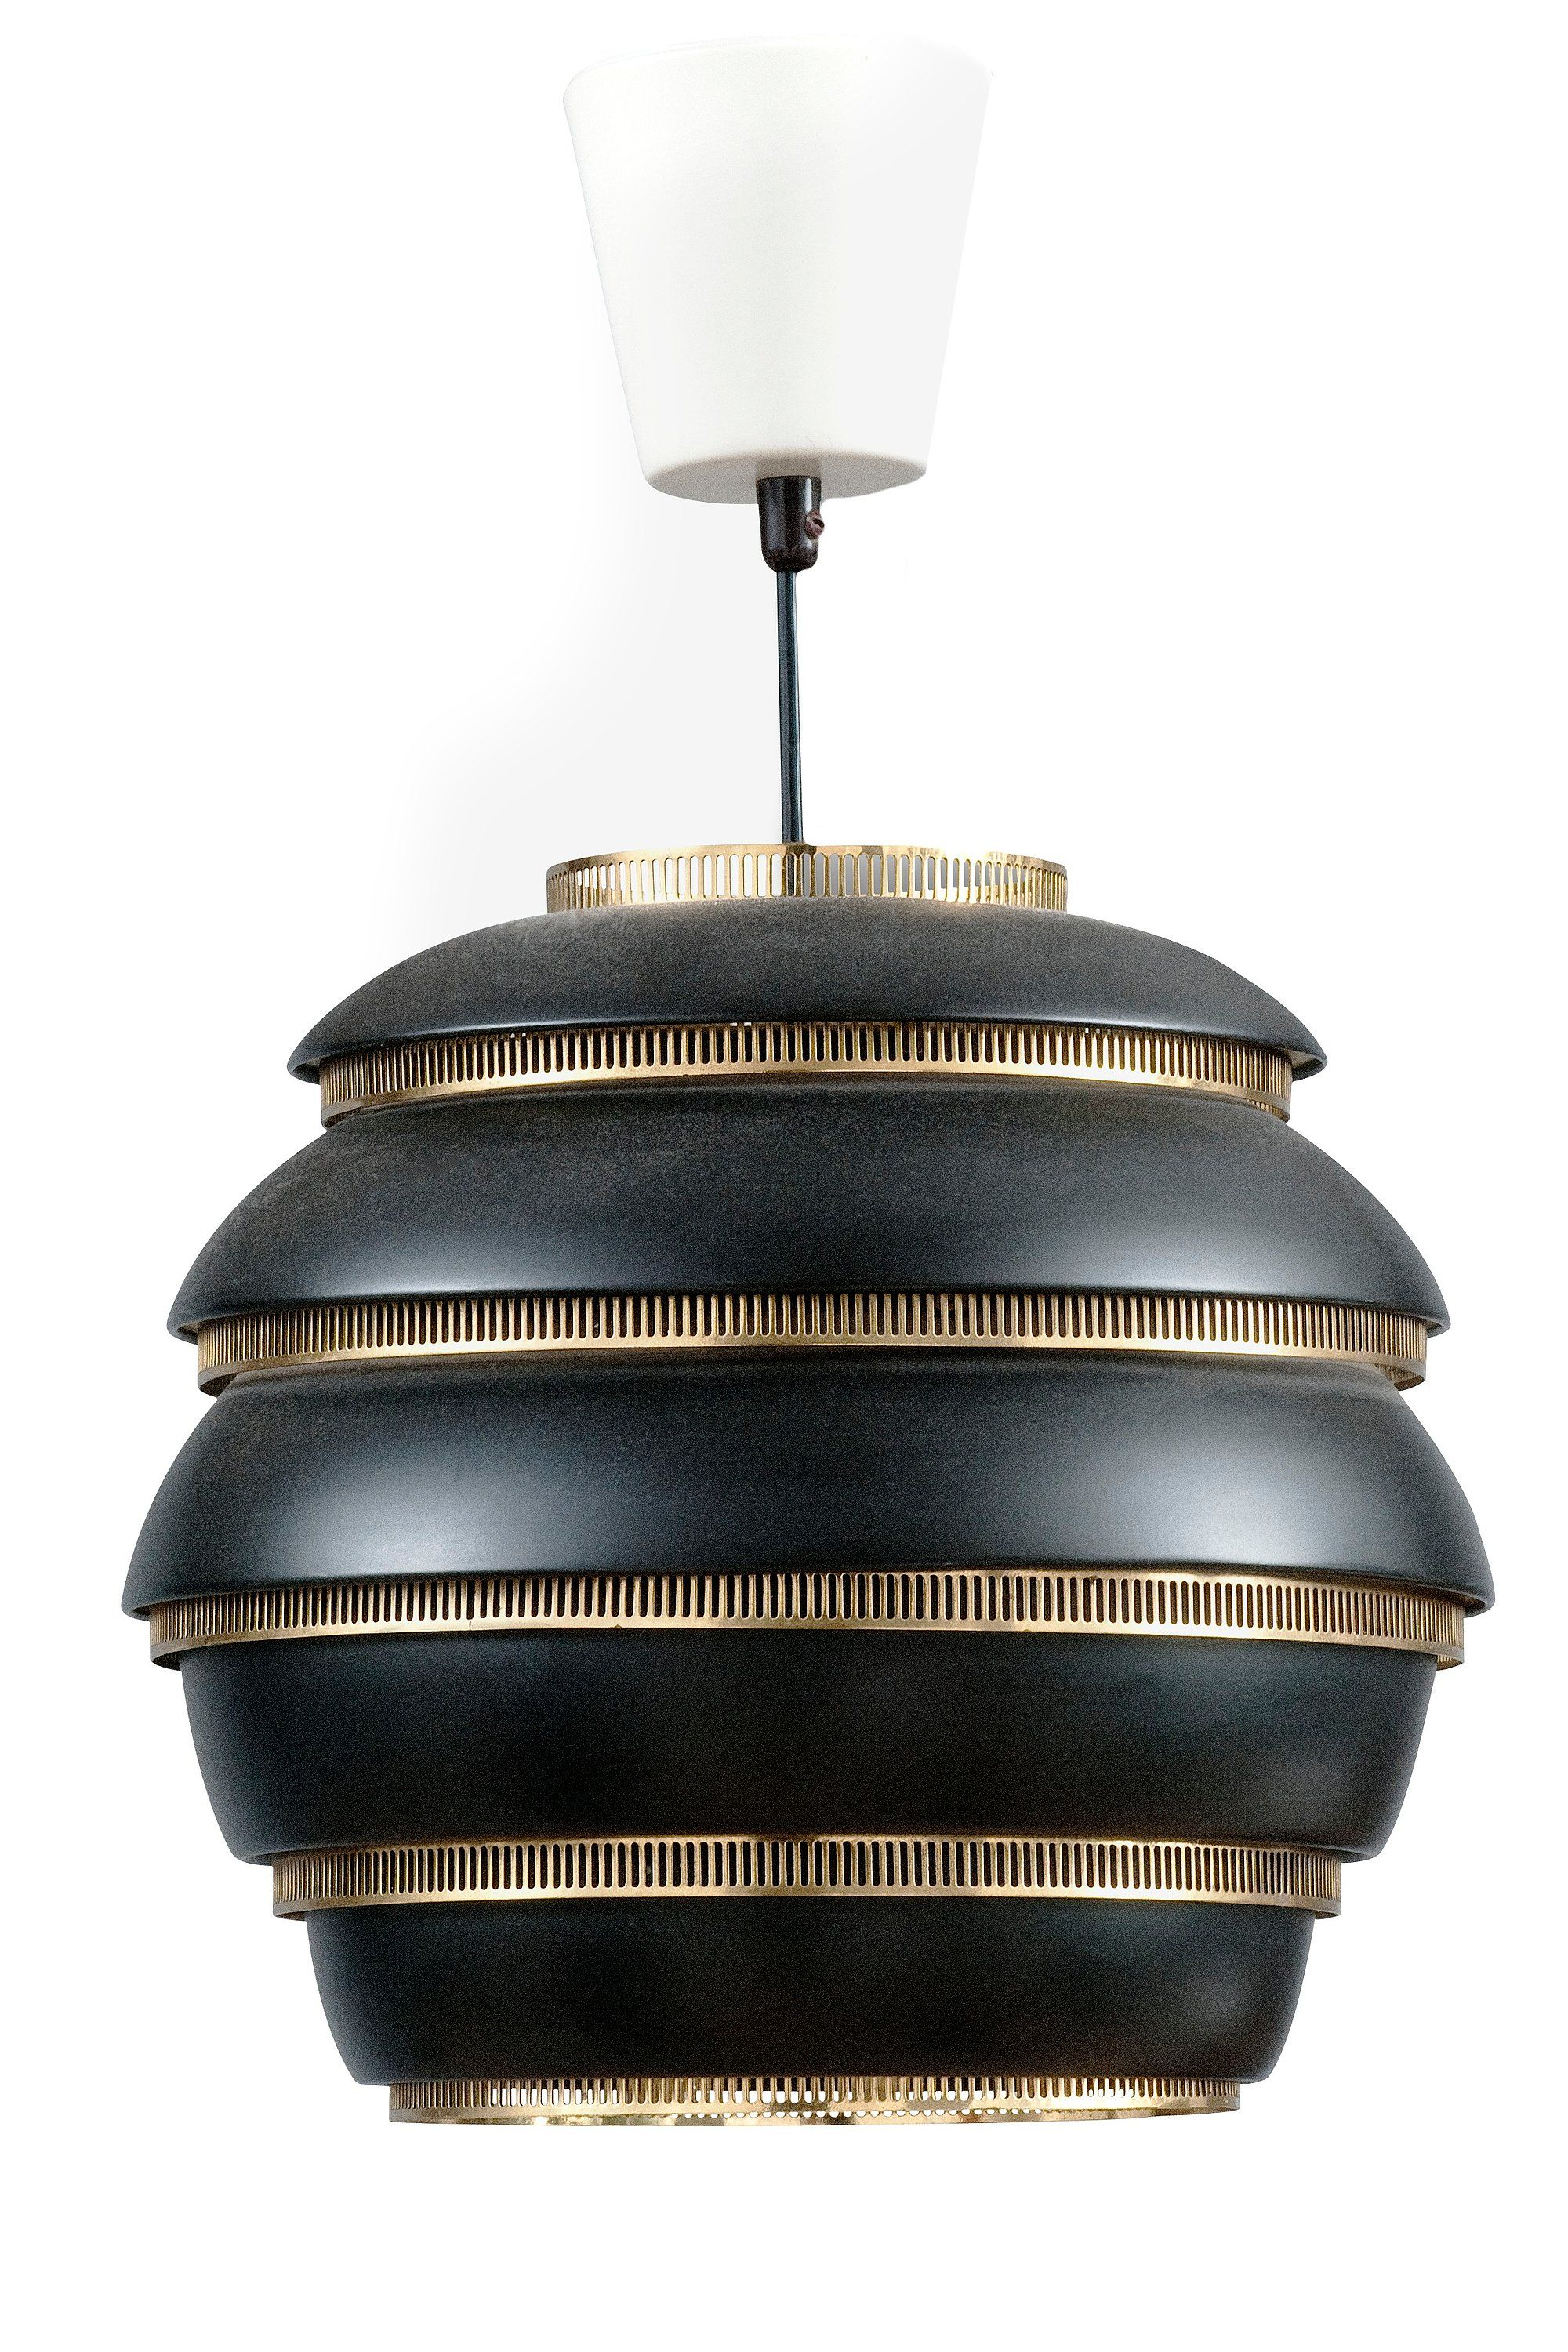 Alvor Aalto beehive lamp. For the home....if you have a cool 4,800 Euros floating around... :-|